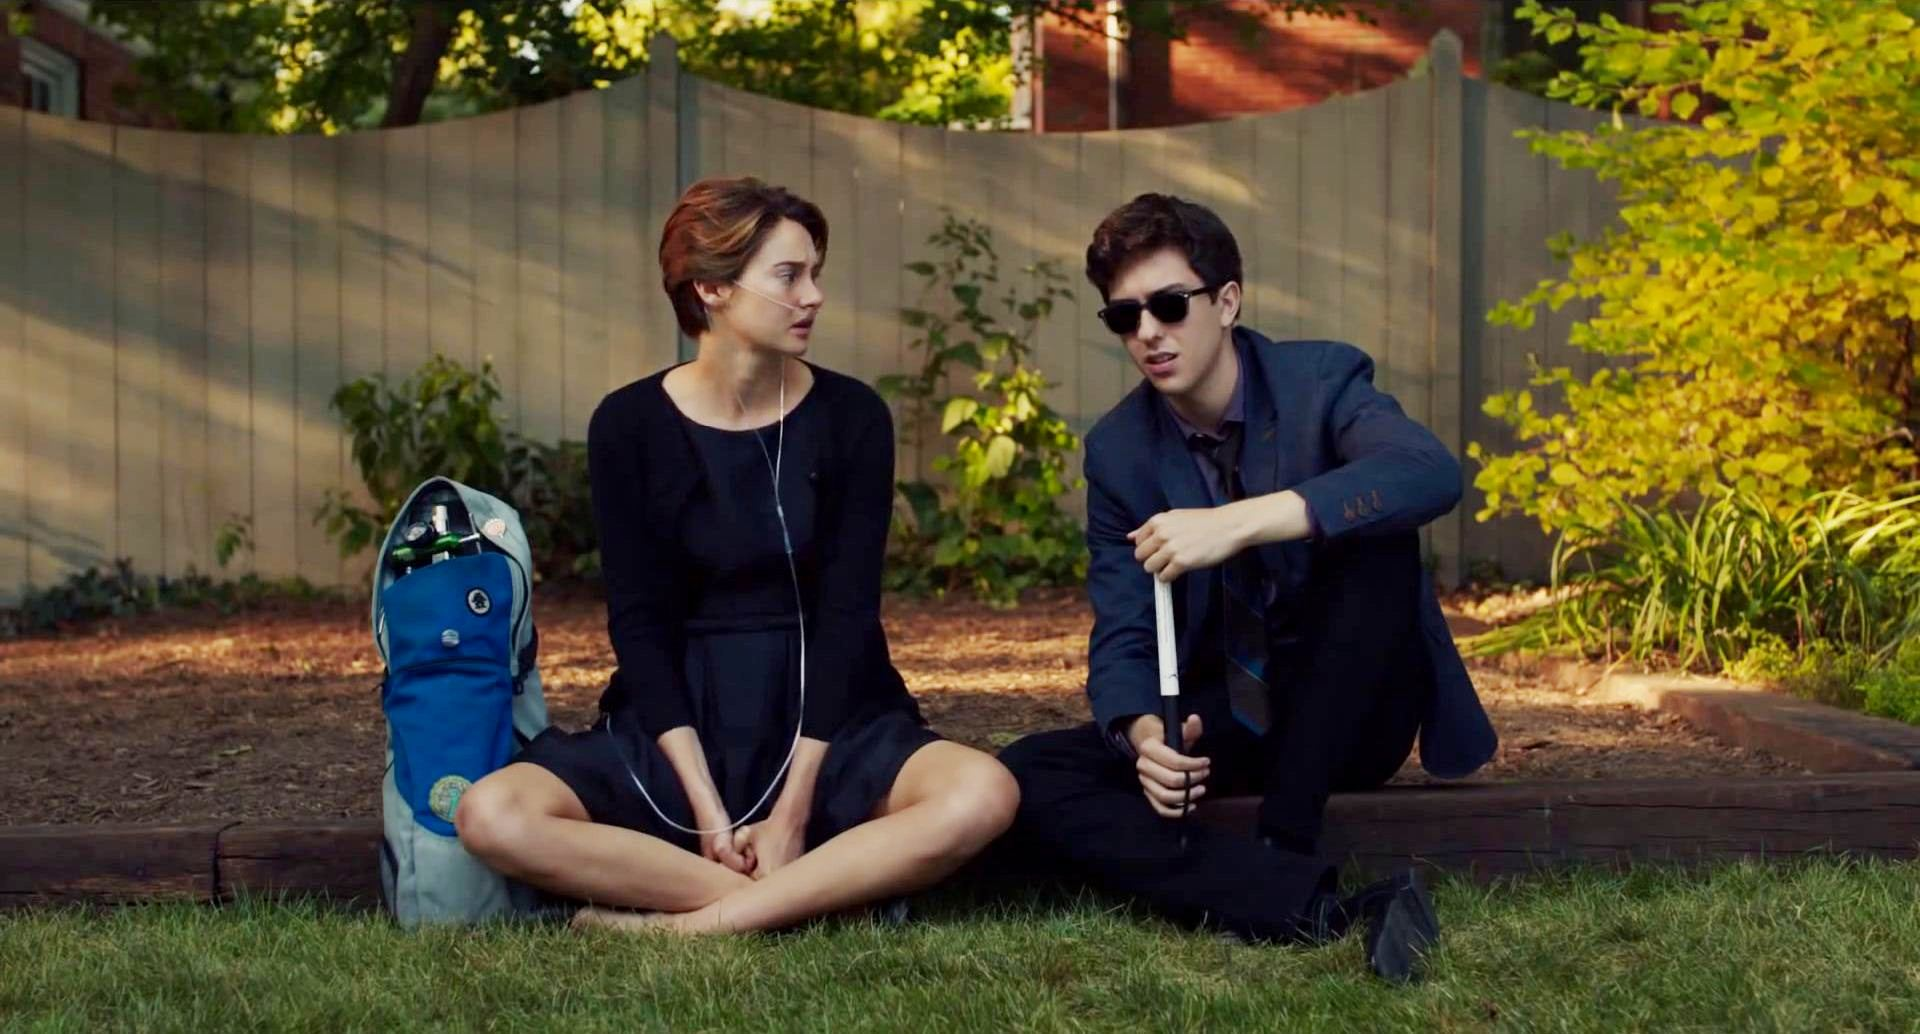 the-fault-in-our-stars-movie-wallpaper-4